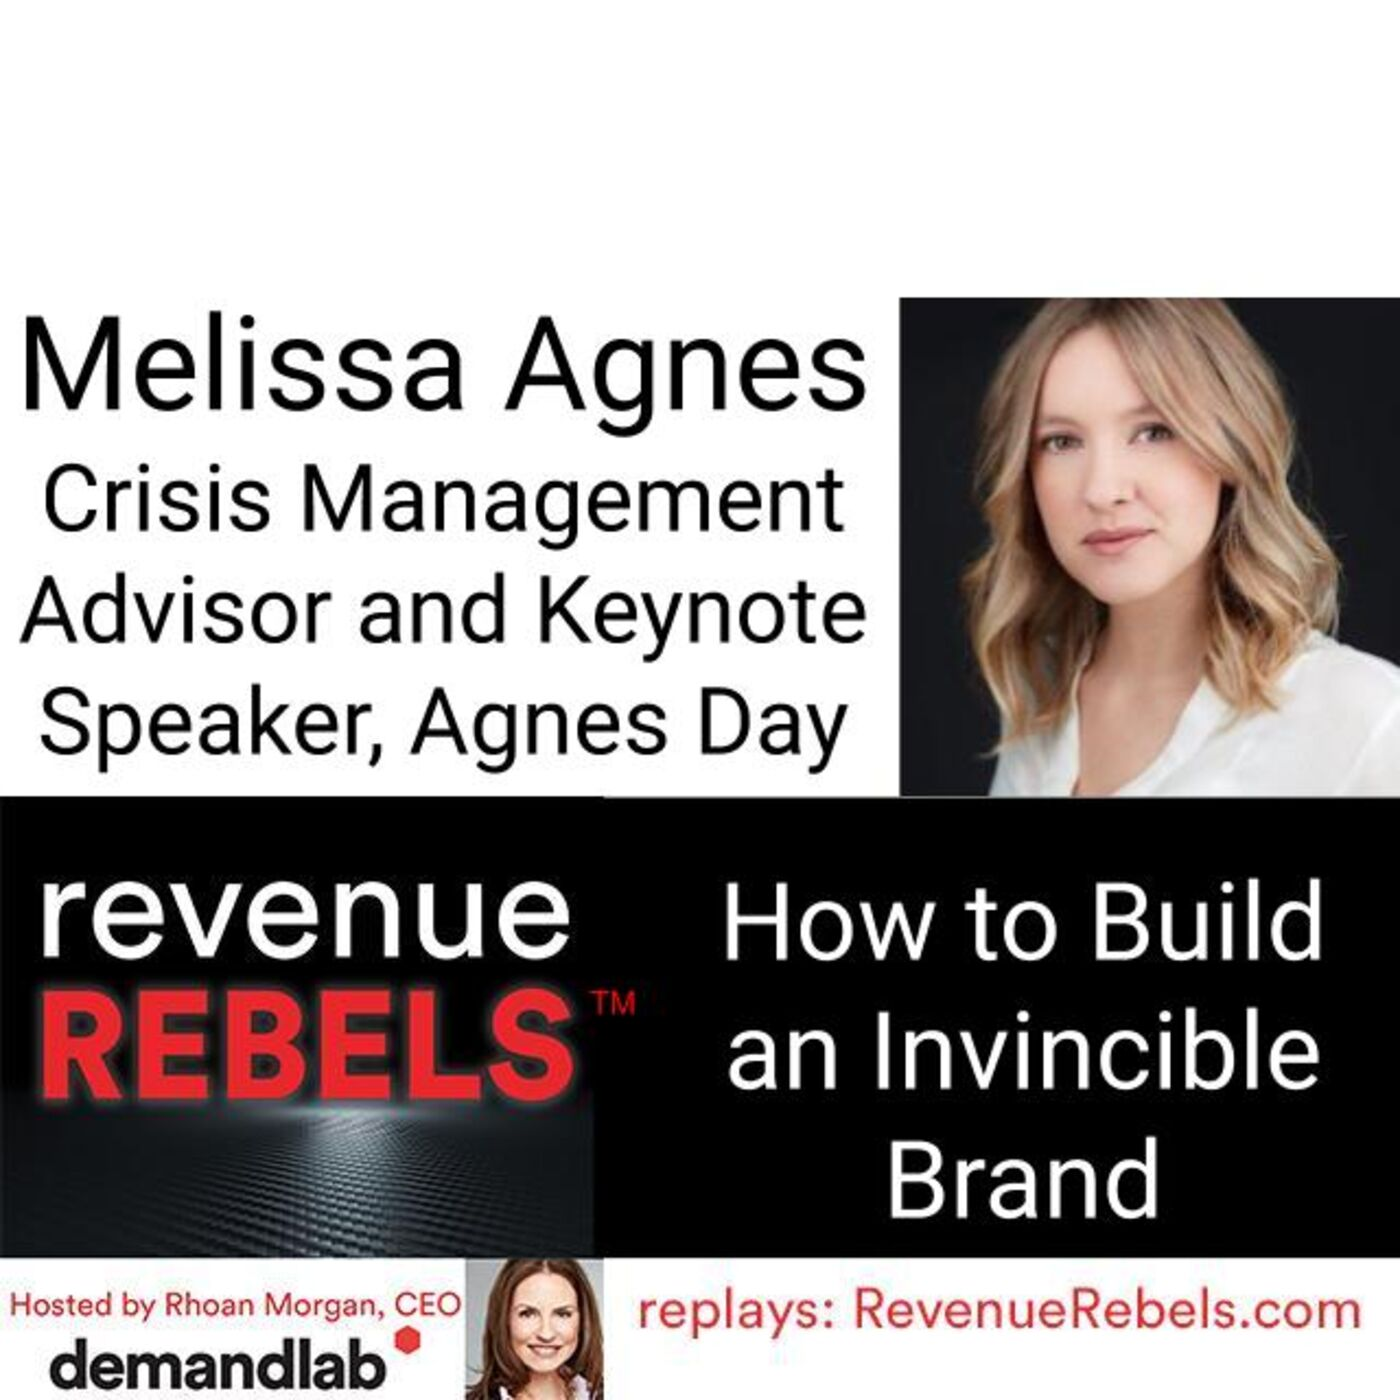 How to Build an Invincible Brand